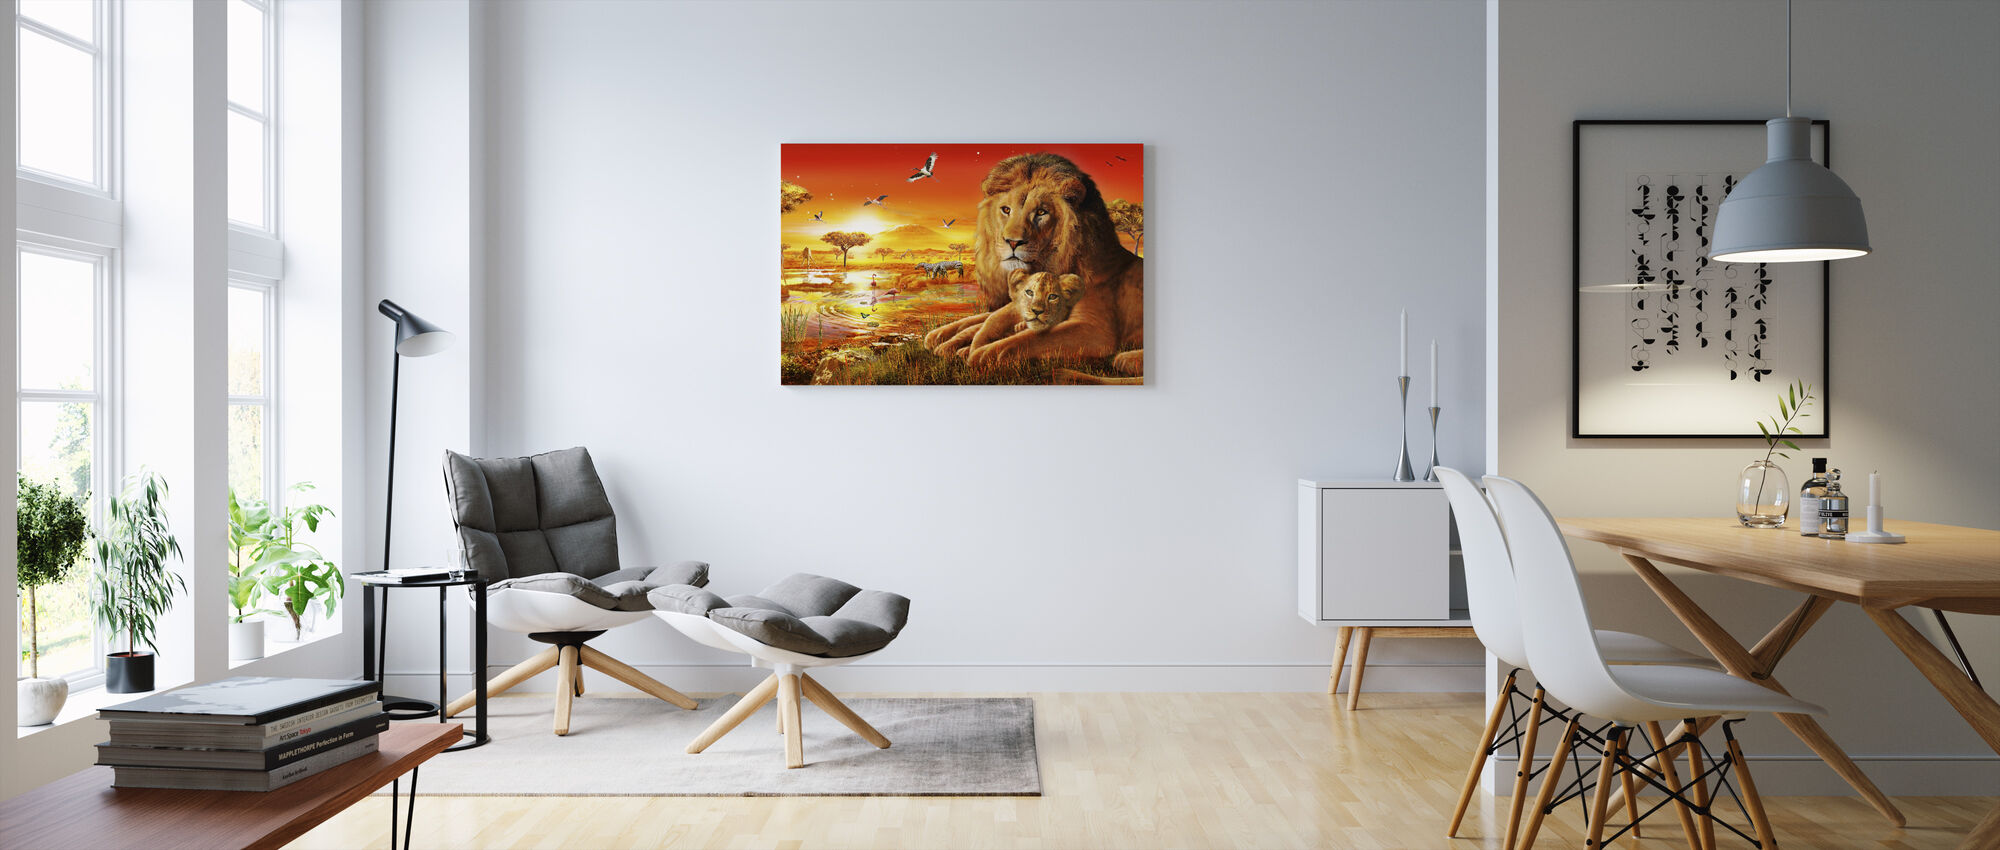 Savanna Sundown - Canvas print - Living Room